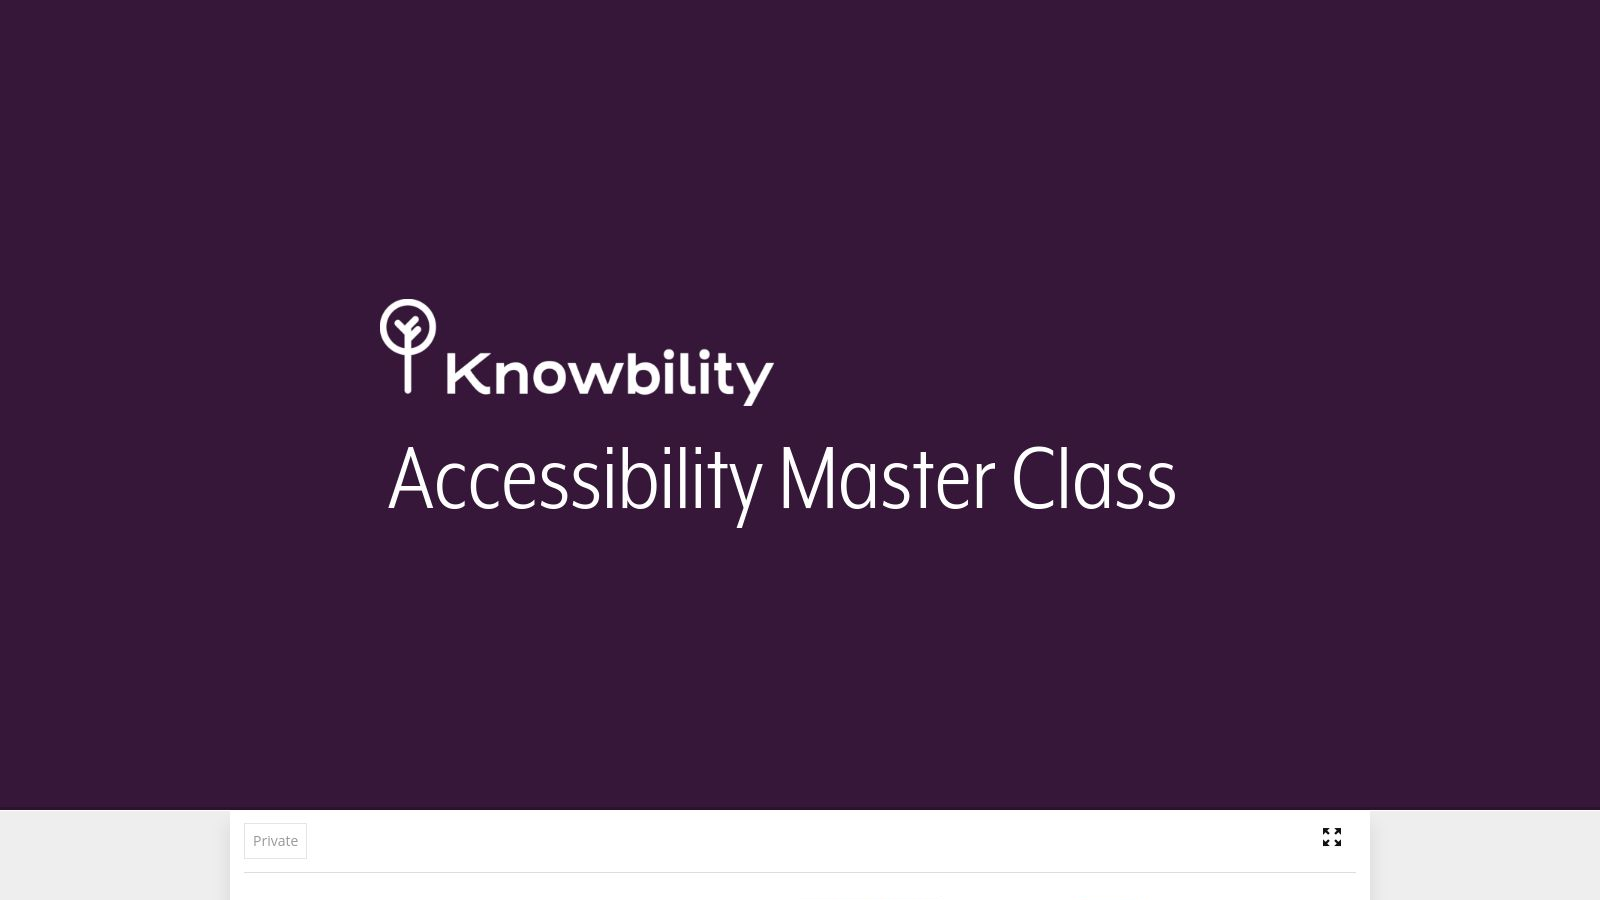 Accessibility Master Class